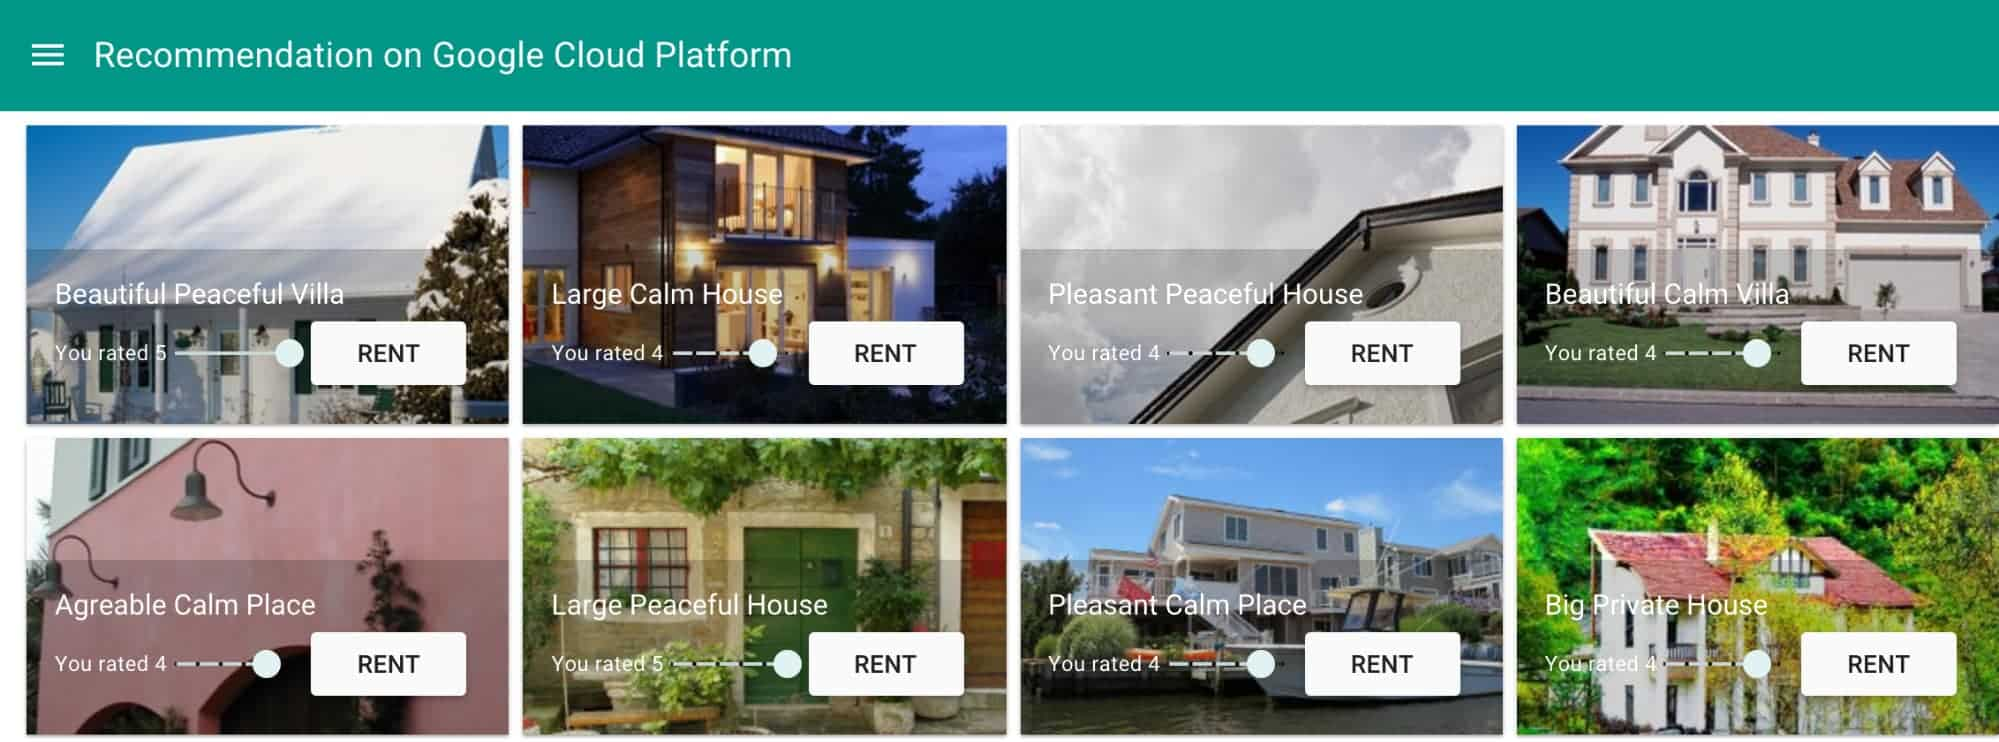 User interface enables renting vacation properties